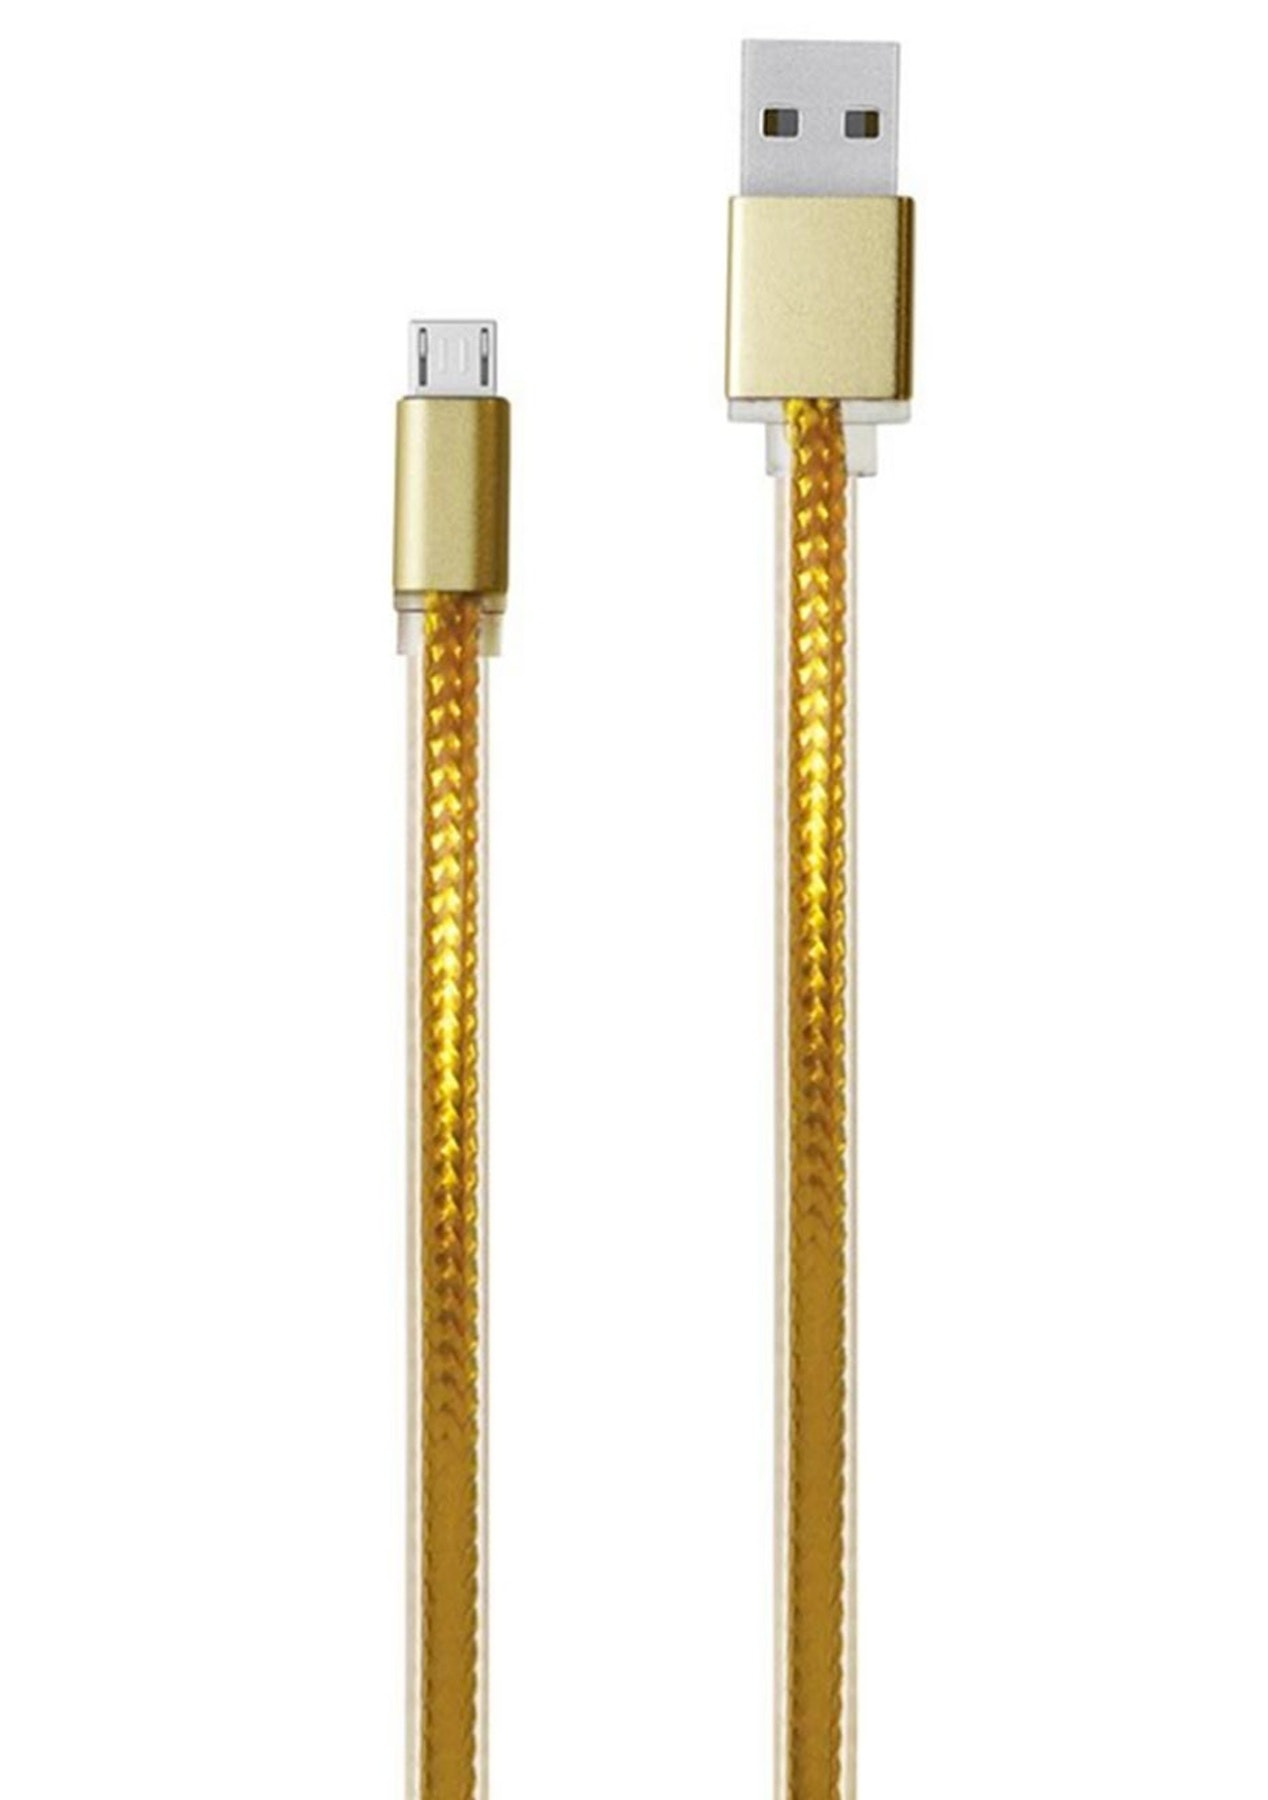 Charged - 2m Metallic USB Charging Cable - Micro USB (Gold)